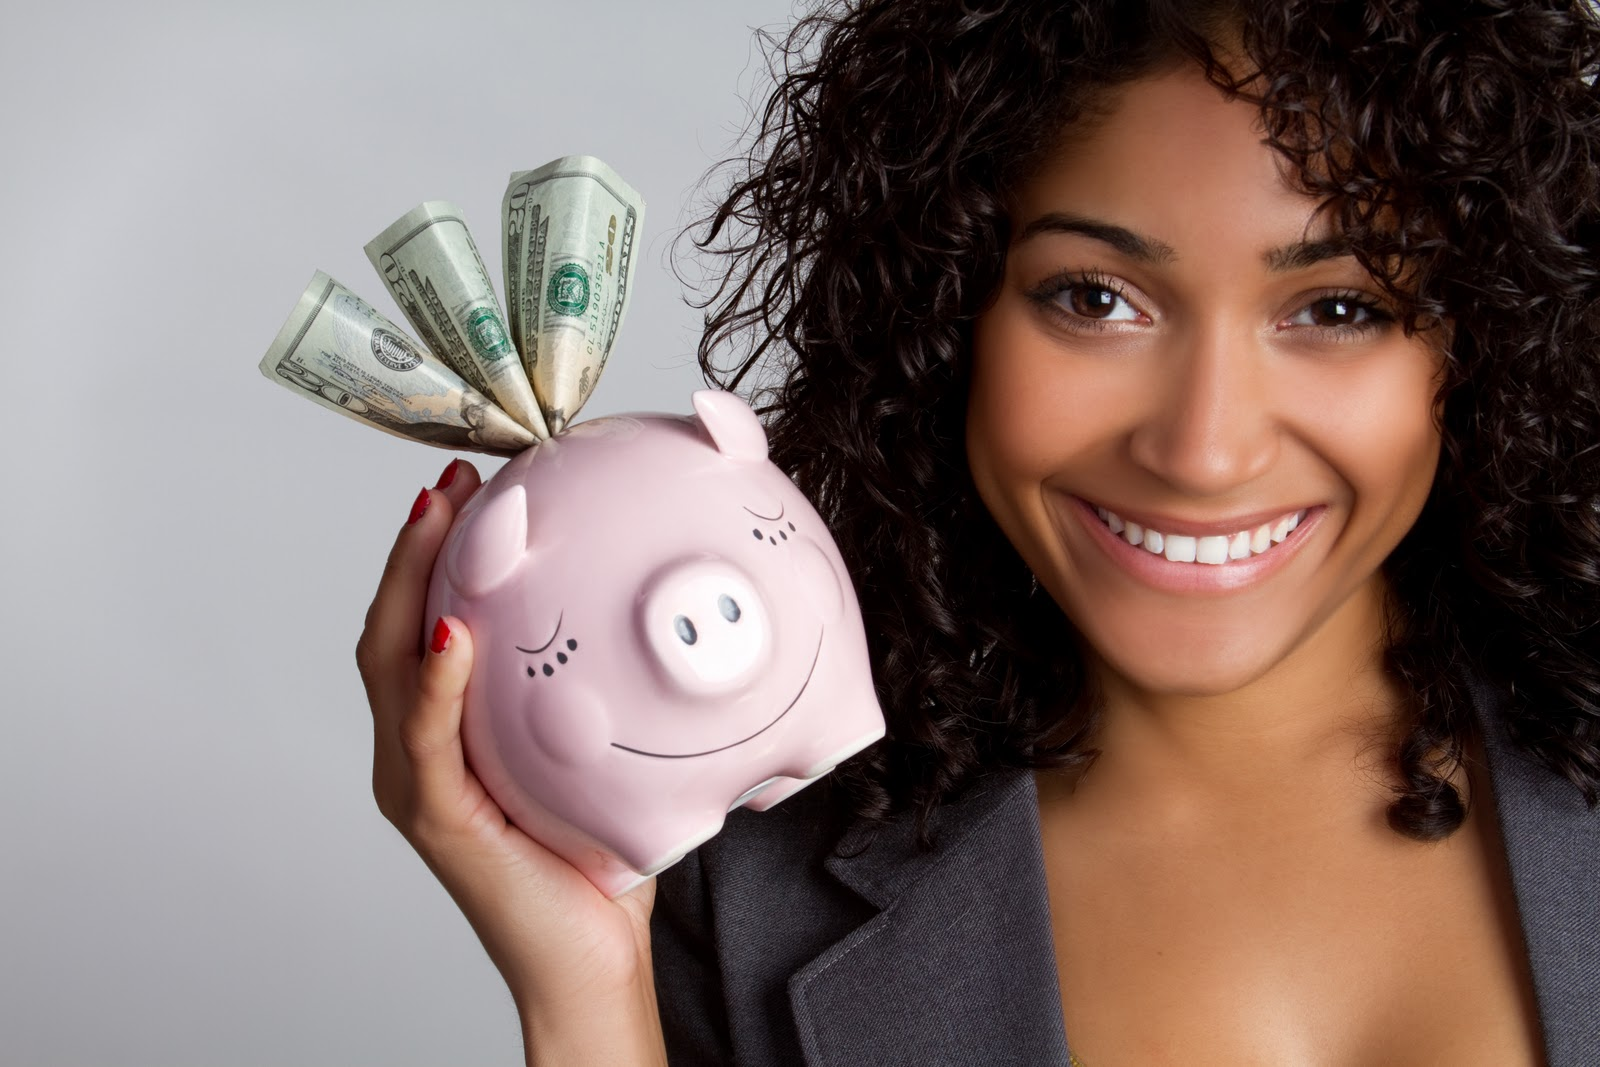 The Areas and Services of Your Business that are Costing You Money